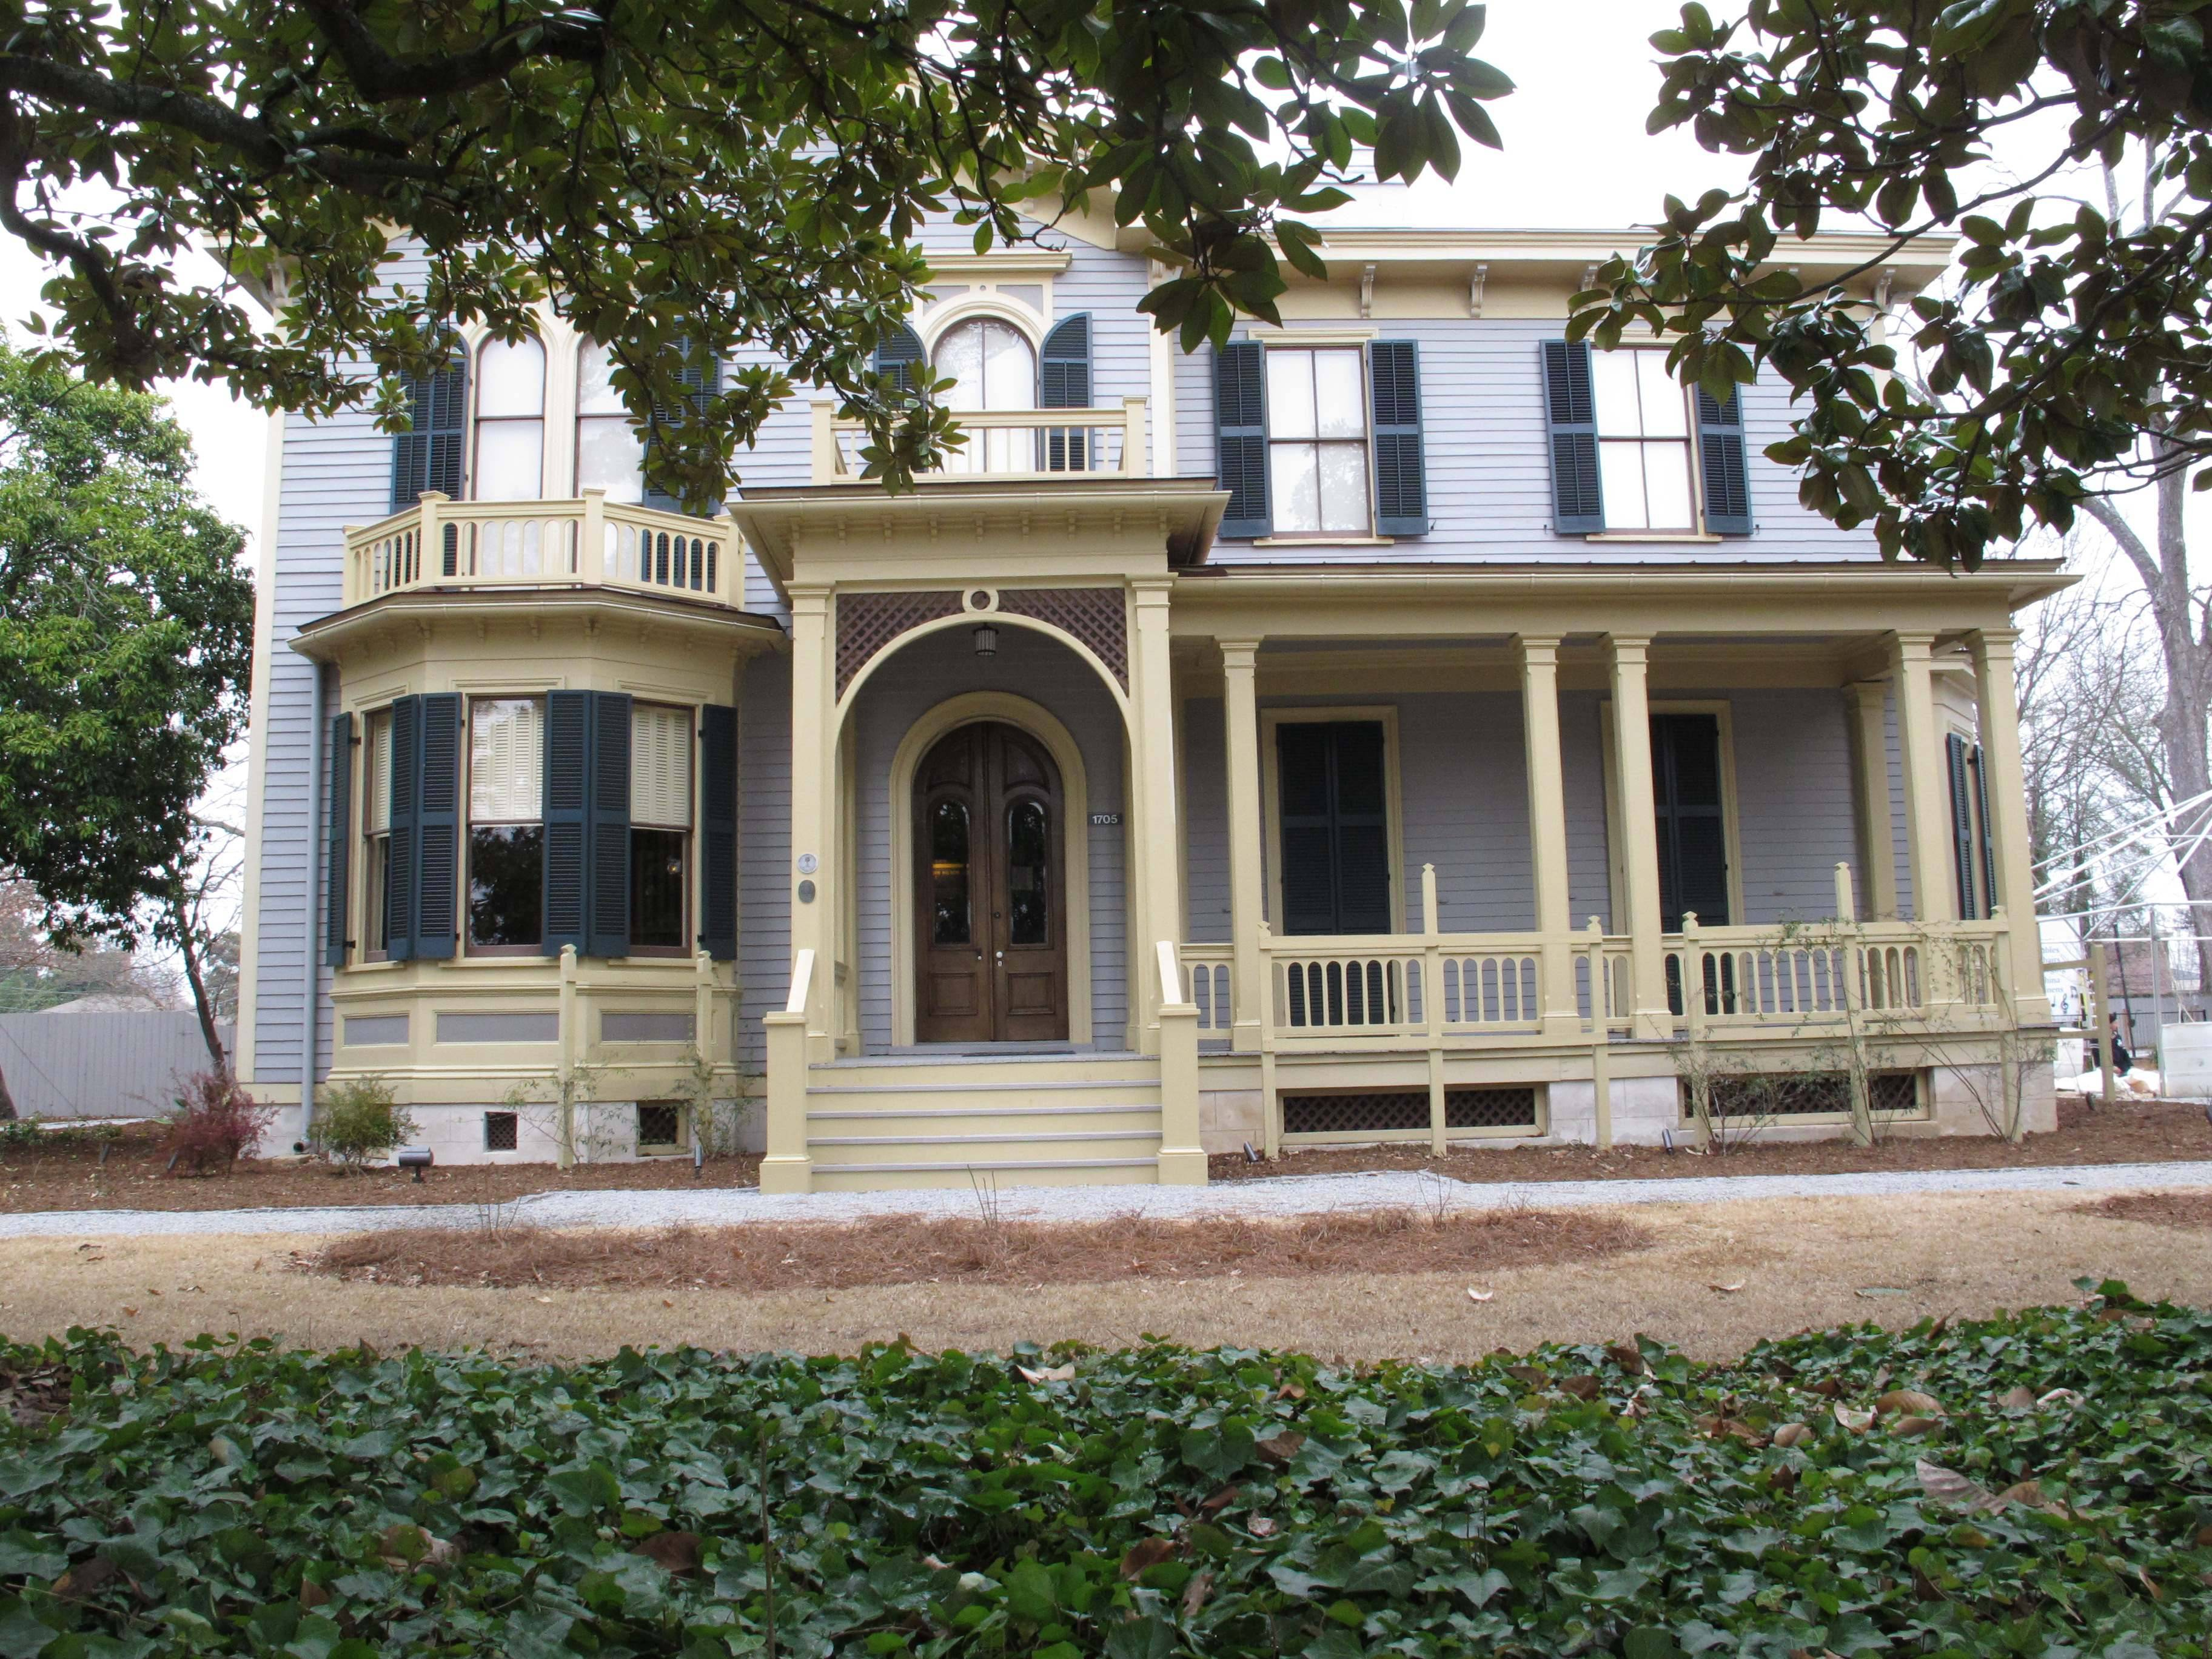 Historic Columbia helped renovate the home where President Woodrow Wilson lived when he was a teen. It is now open to the public as a museum.